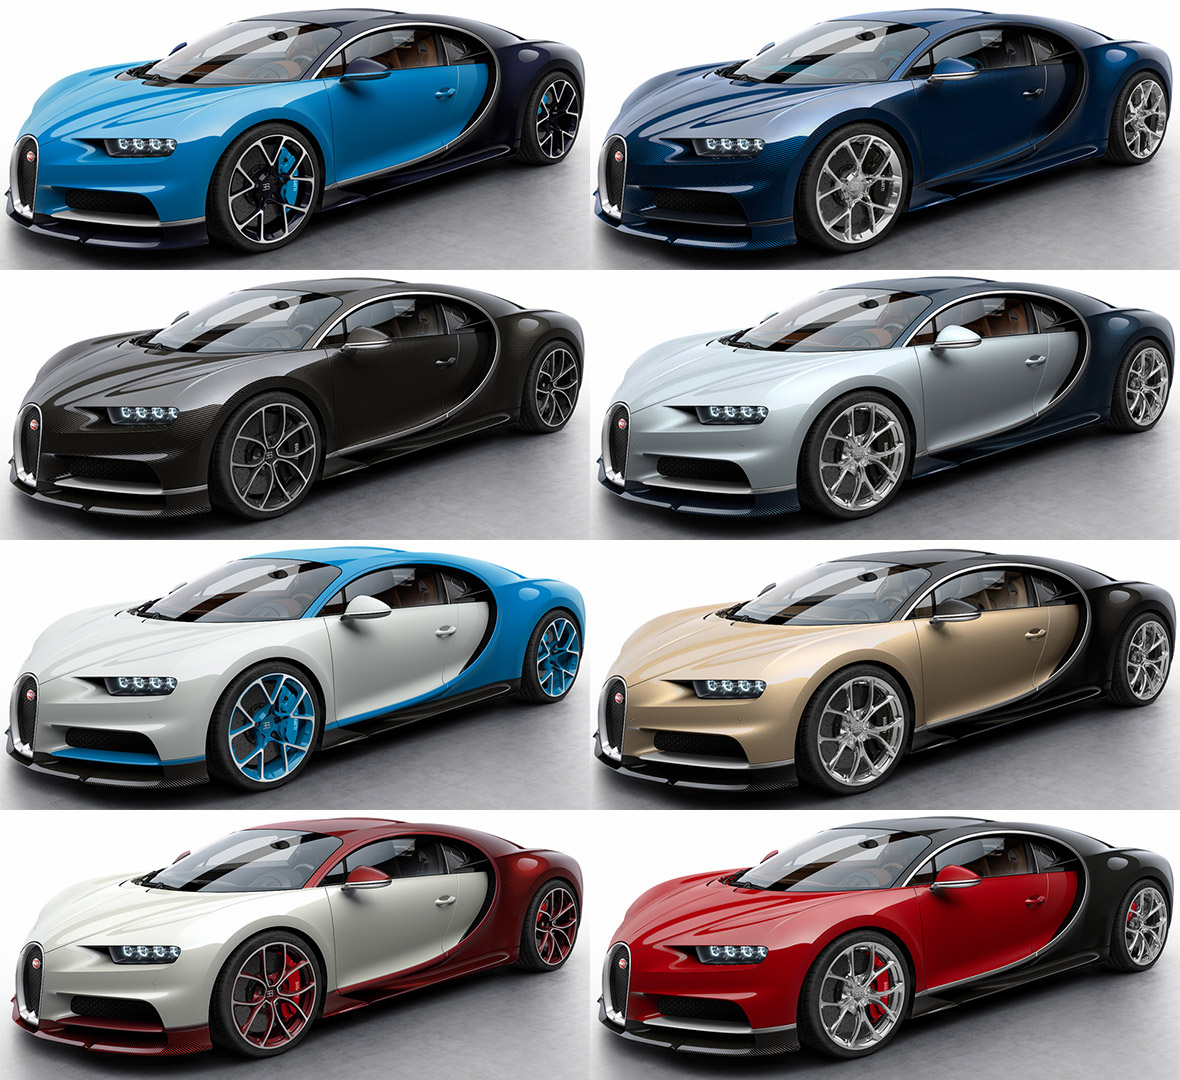 Bugatti Sports Car: Bugatti Chiron: World's Most Powerful Super Sports Car